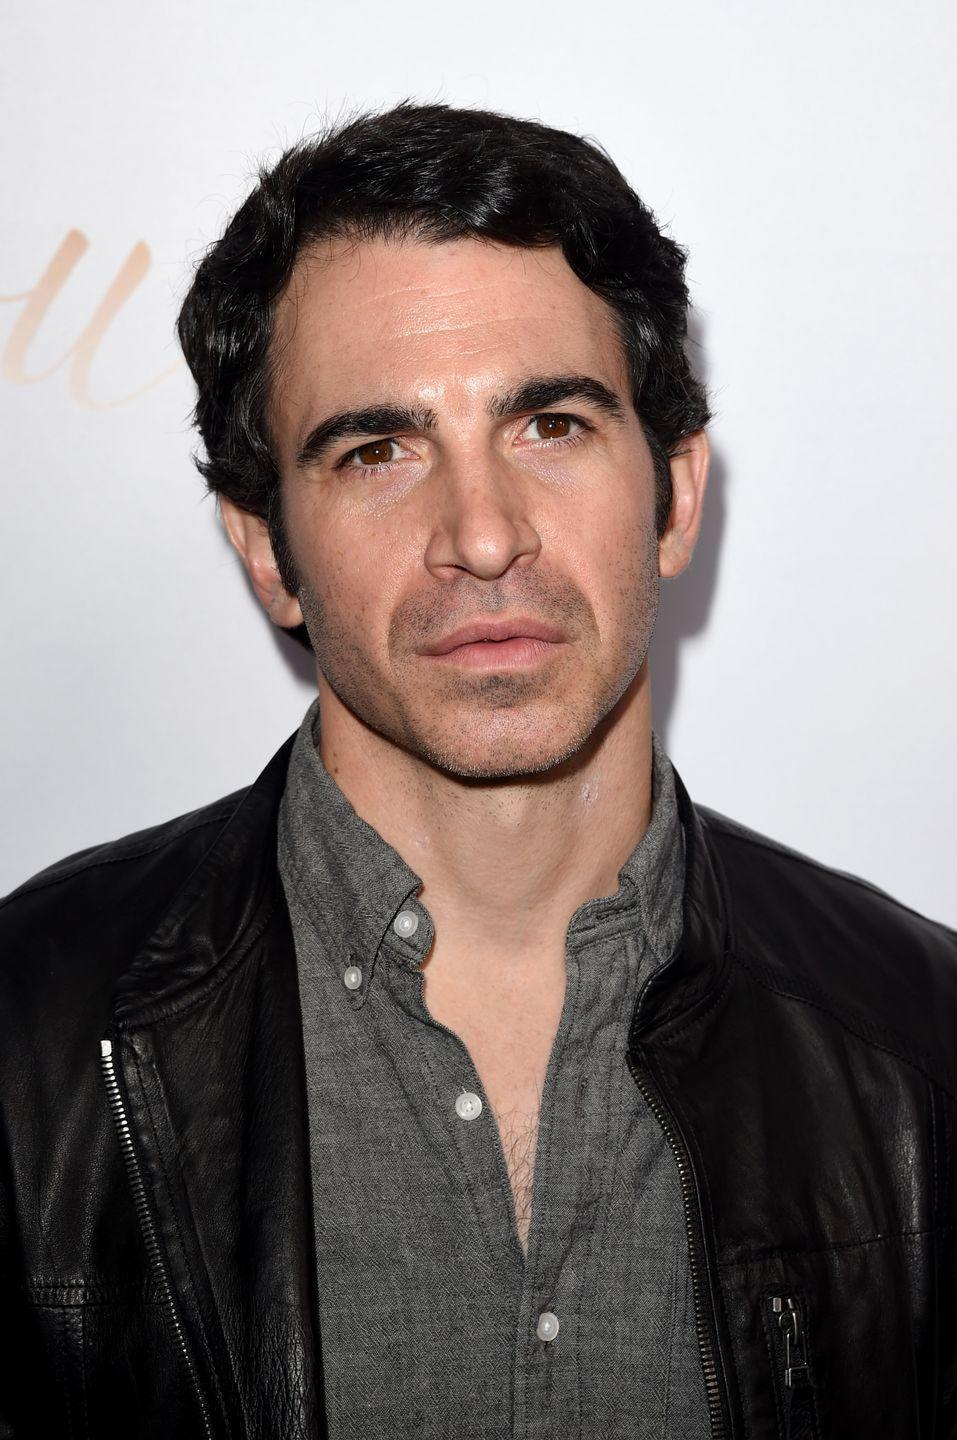 "<p>Chris Messina took a step back in season 4, demoting Danny Castellano to a recurring guest role, which allowed Messina to work on other projects. ""Mindy was always cool with me and understanding that in doing the show, that I wanted to have time to do other projects whether that be movies or a play or directing — I directed a movie when I was there and getting another one together — so she was always very open. She knew coming onto the show that was a worry or concern of mine, and she stuck to her word,"" Messina told <a href=""https://www.hollywoodreporter.com/live-feed/mindy-project-chris-messina-final-season-return-1054815"" rel=""nofollow noopener"" target=""_blank"" data-ylk=""slk:The Hollywood Reporter"" class=""link rapid-noclick-resp"">The Hollywood Reporter</a>. </p>"